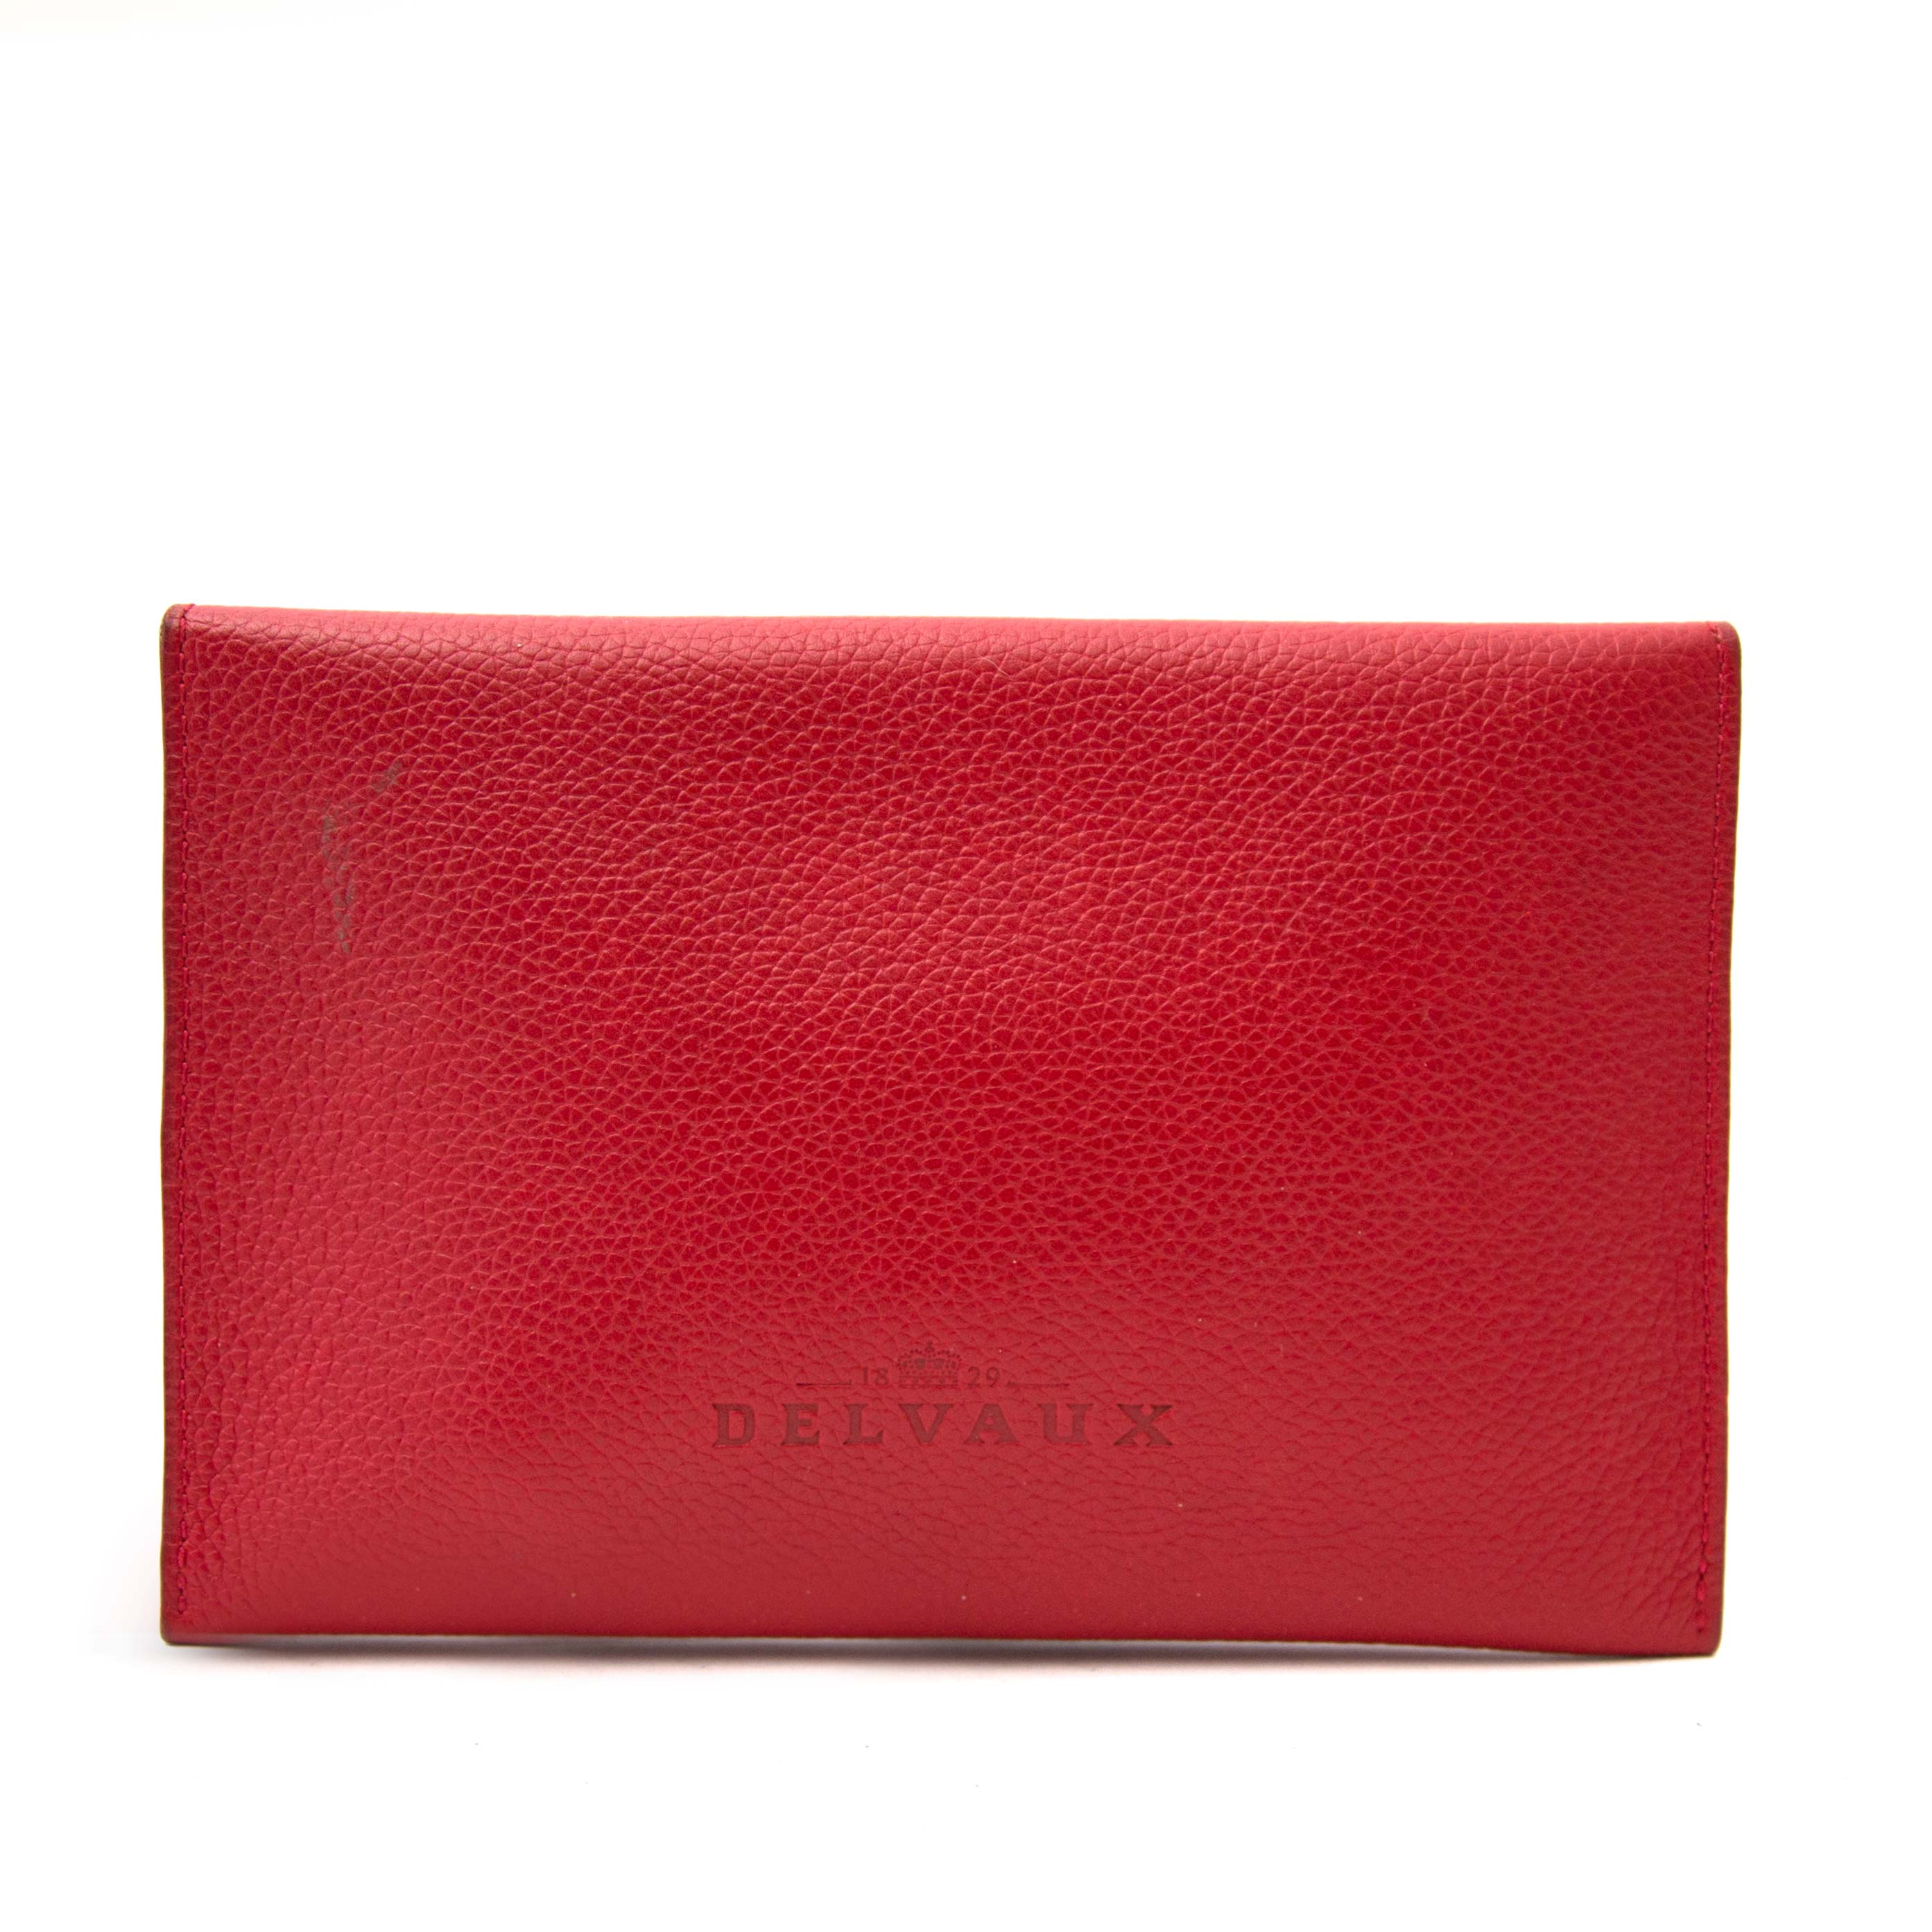 buy now online secondhand Delvaux Red Enveloppe Wallet on labellov.com